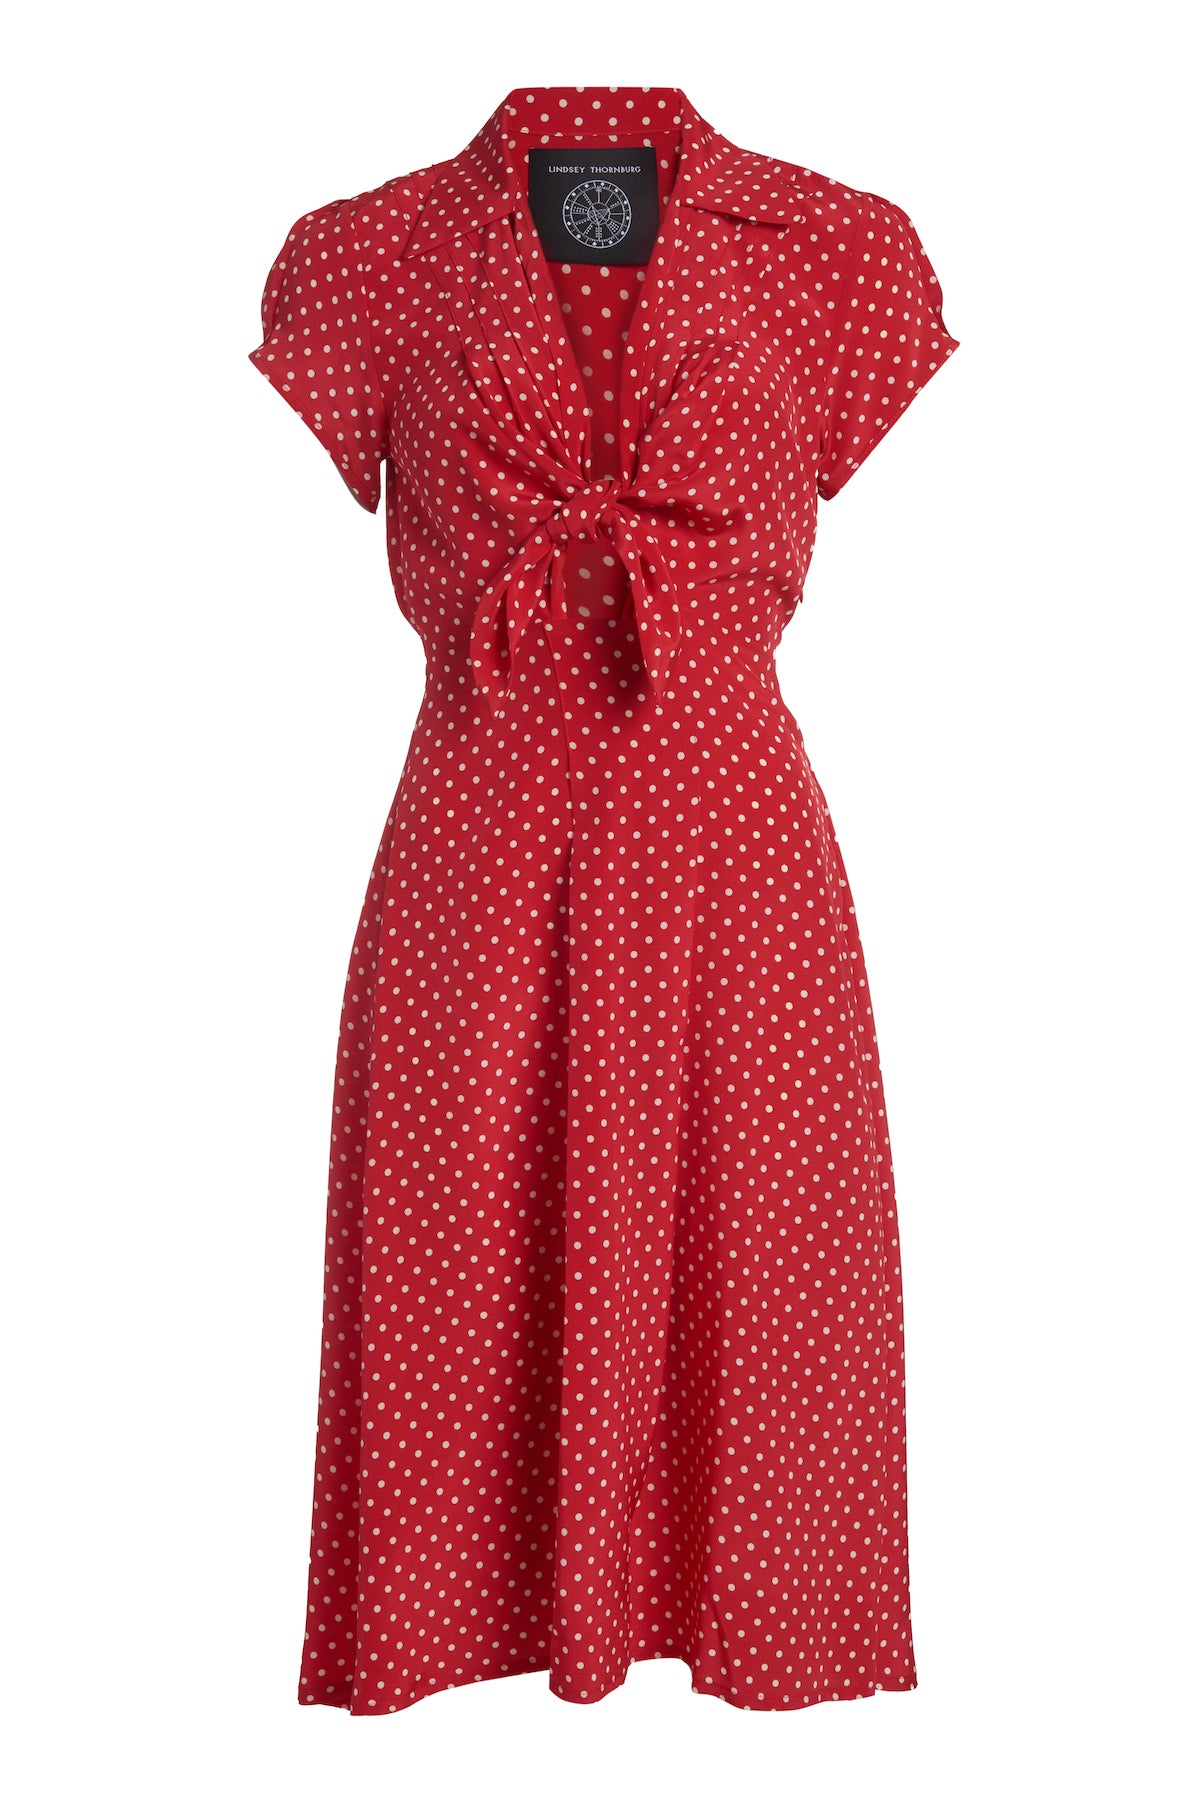 Clark Dress Red Polka Dot